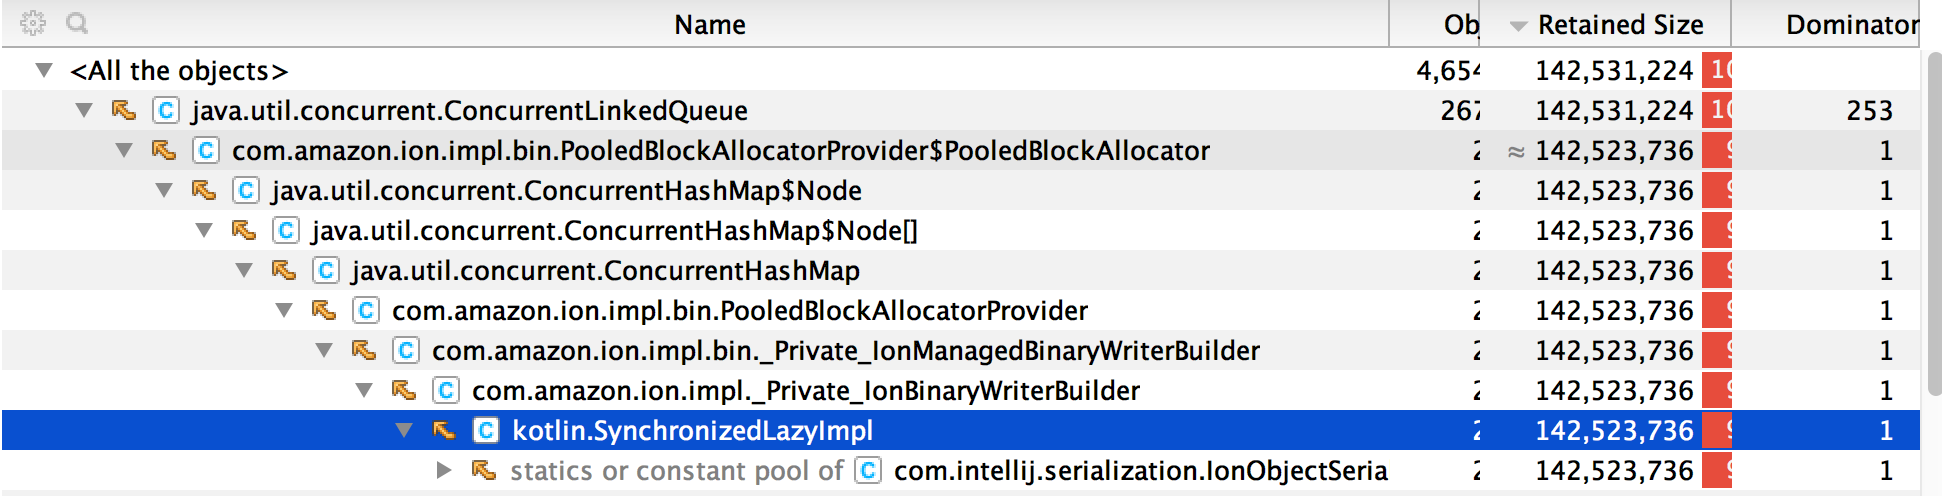 benchmark to see if PooledBlockAllocator can be replaced by